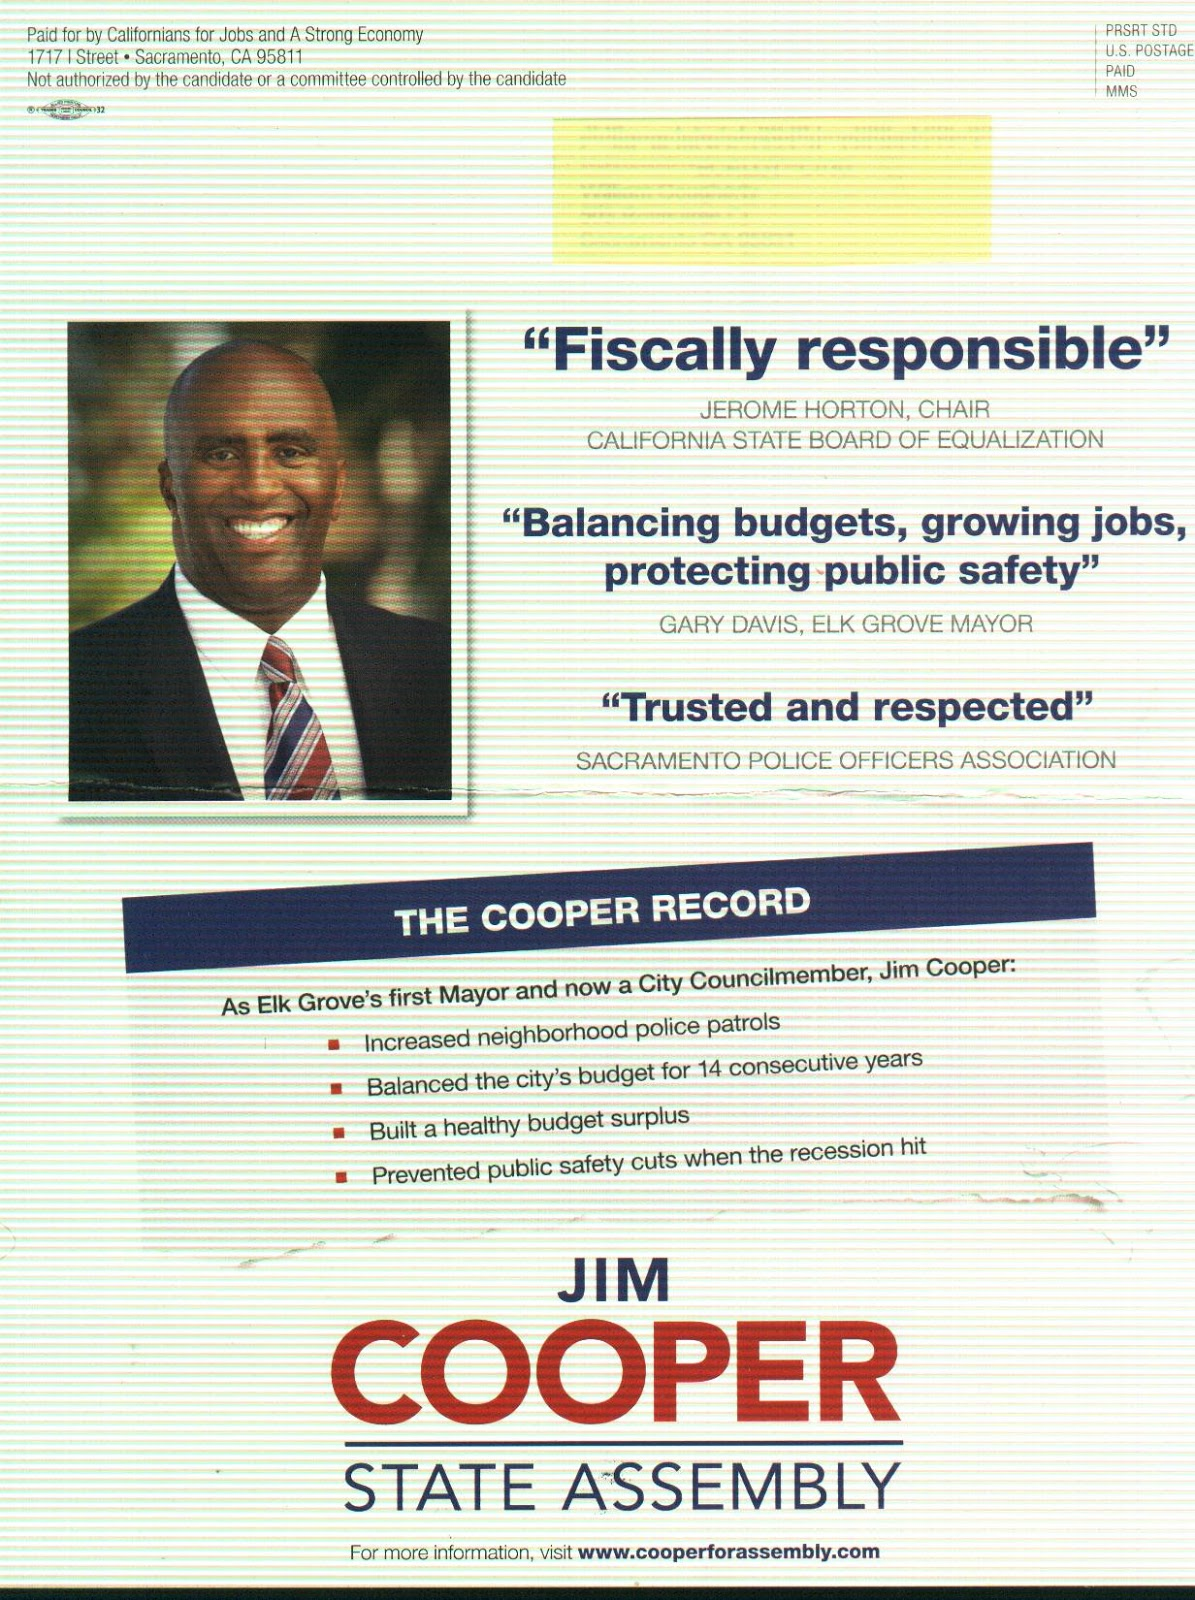 Complaint Filed on Mailer Sent by Independent Committee on Cooper's Behalf